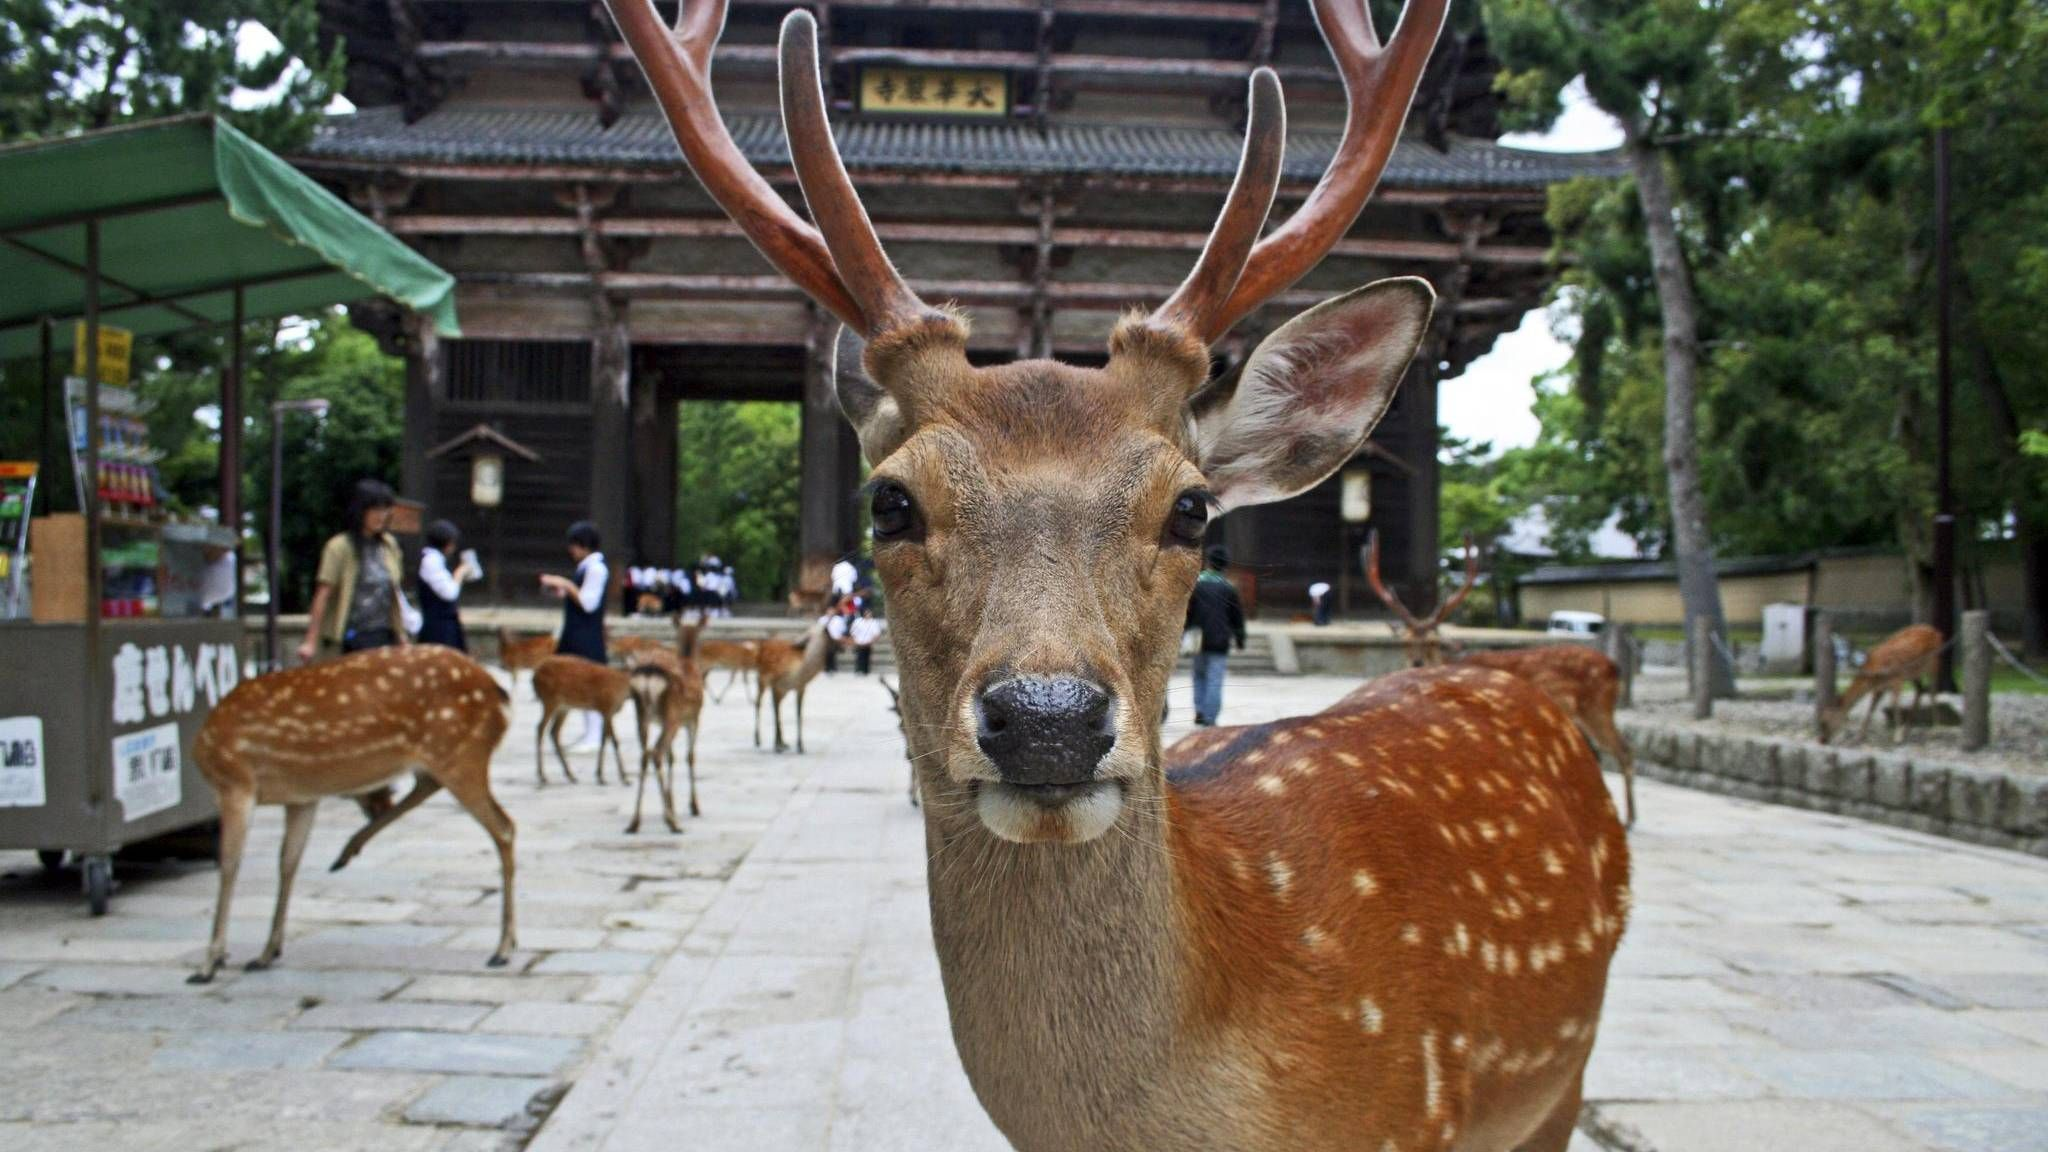 Biscuit time? Deer think so, in Nara Park, Japan